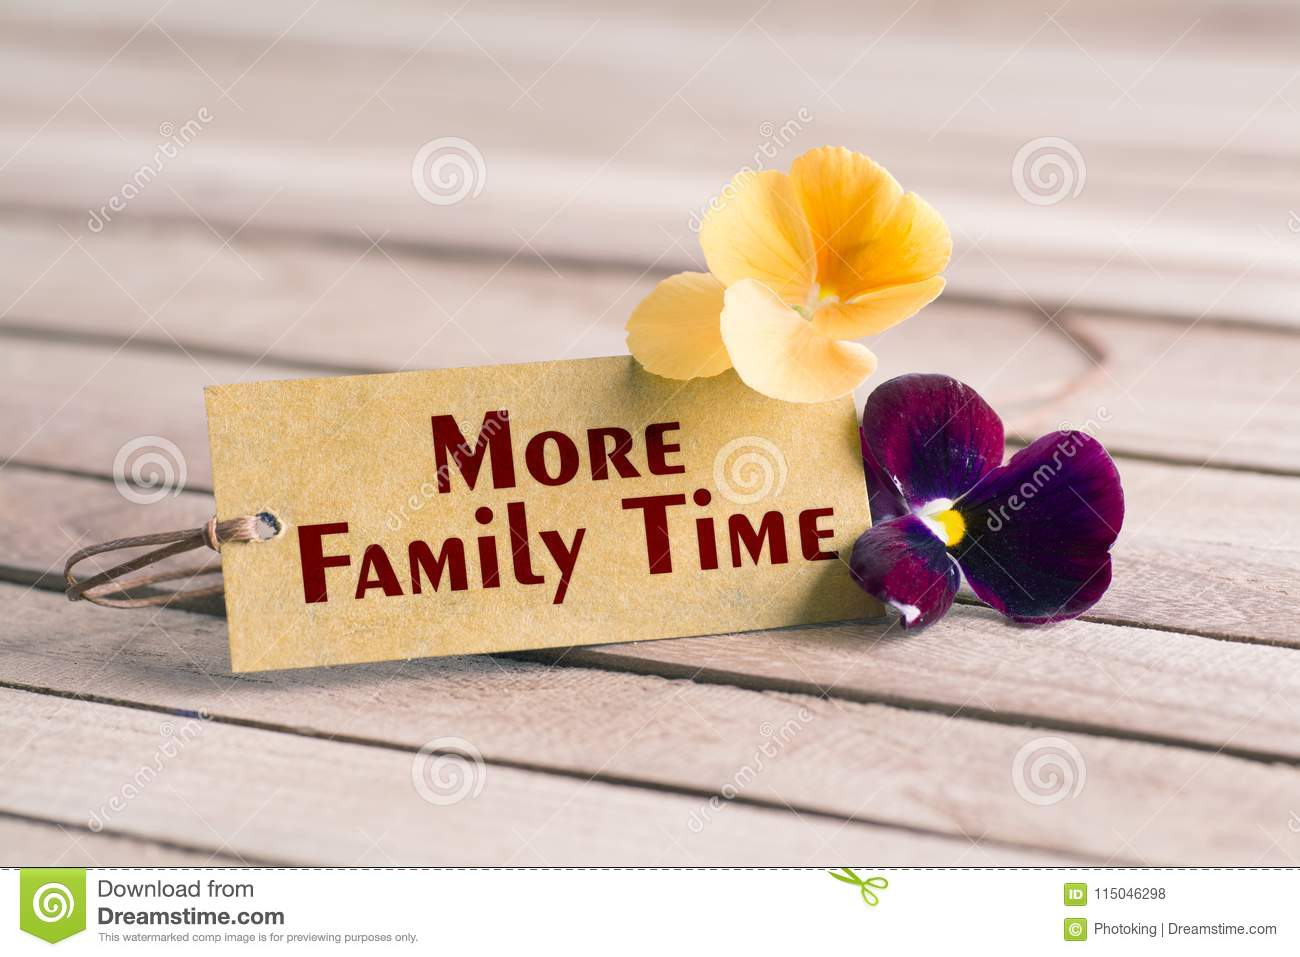 More family time tag